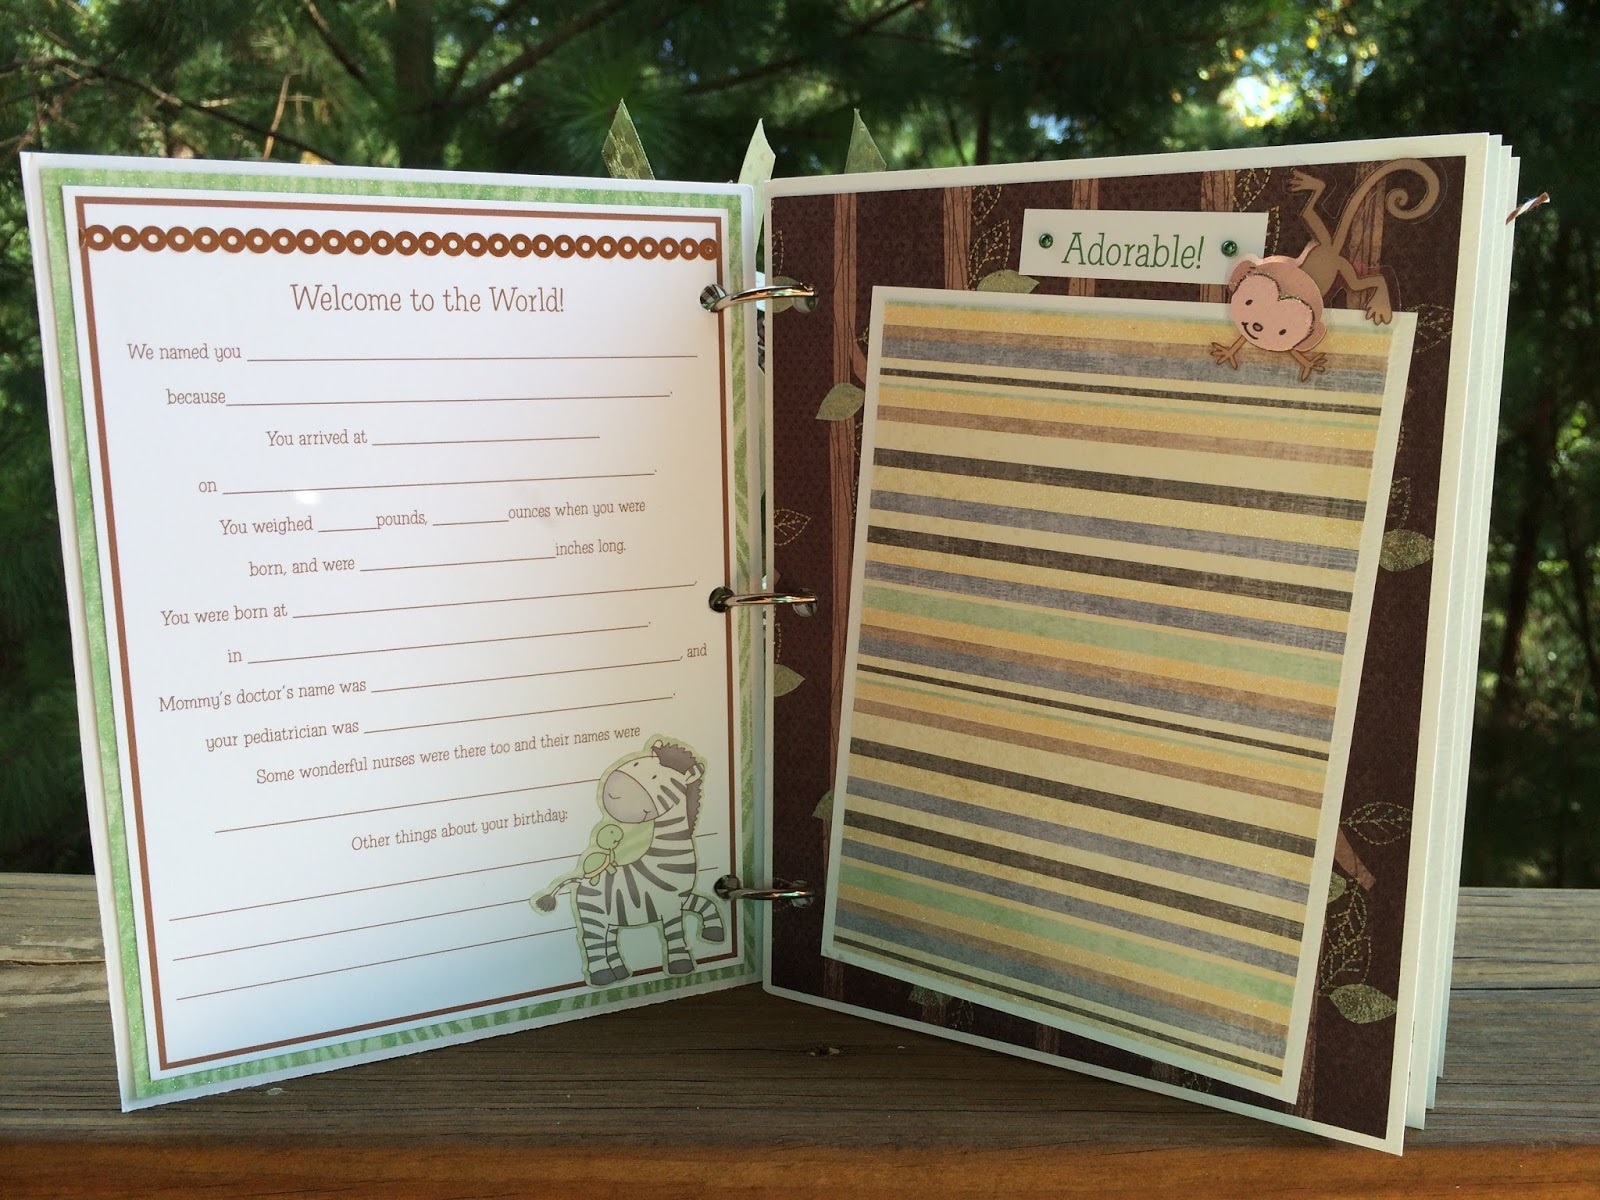 How to make scrapbook journal - This Baby Scrapbook Journal Mini Album Is Available As A Diy Kit 39 99 Or Pre Made 49 99 And Will Make A Wonderful Keepsake For All Of Those Treasured